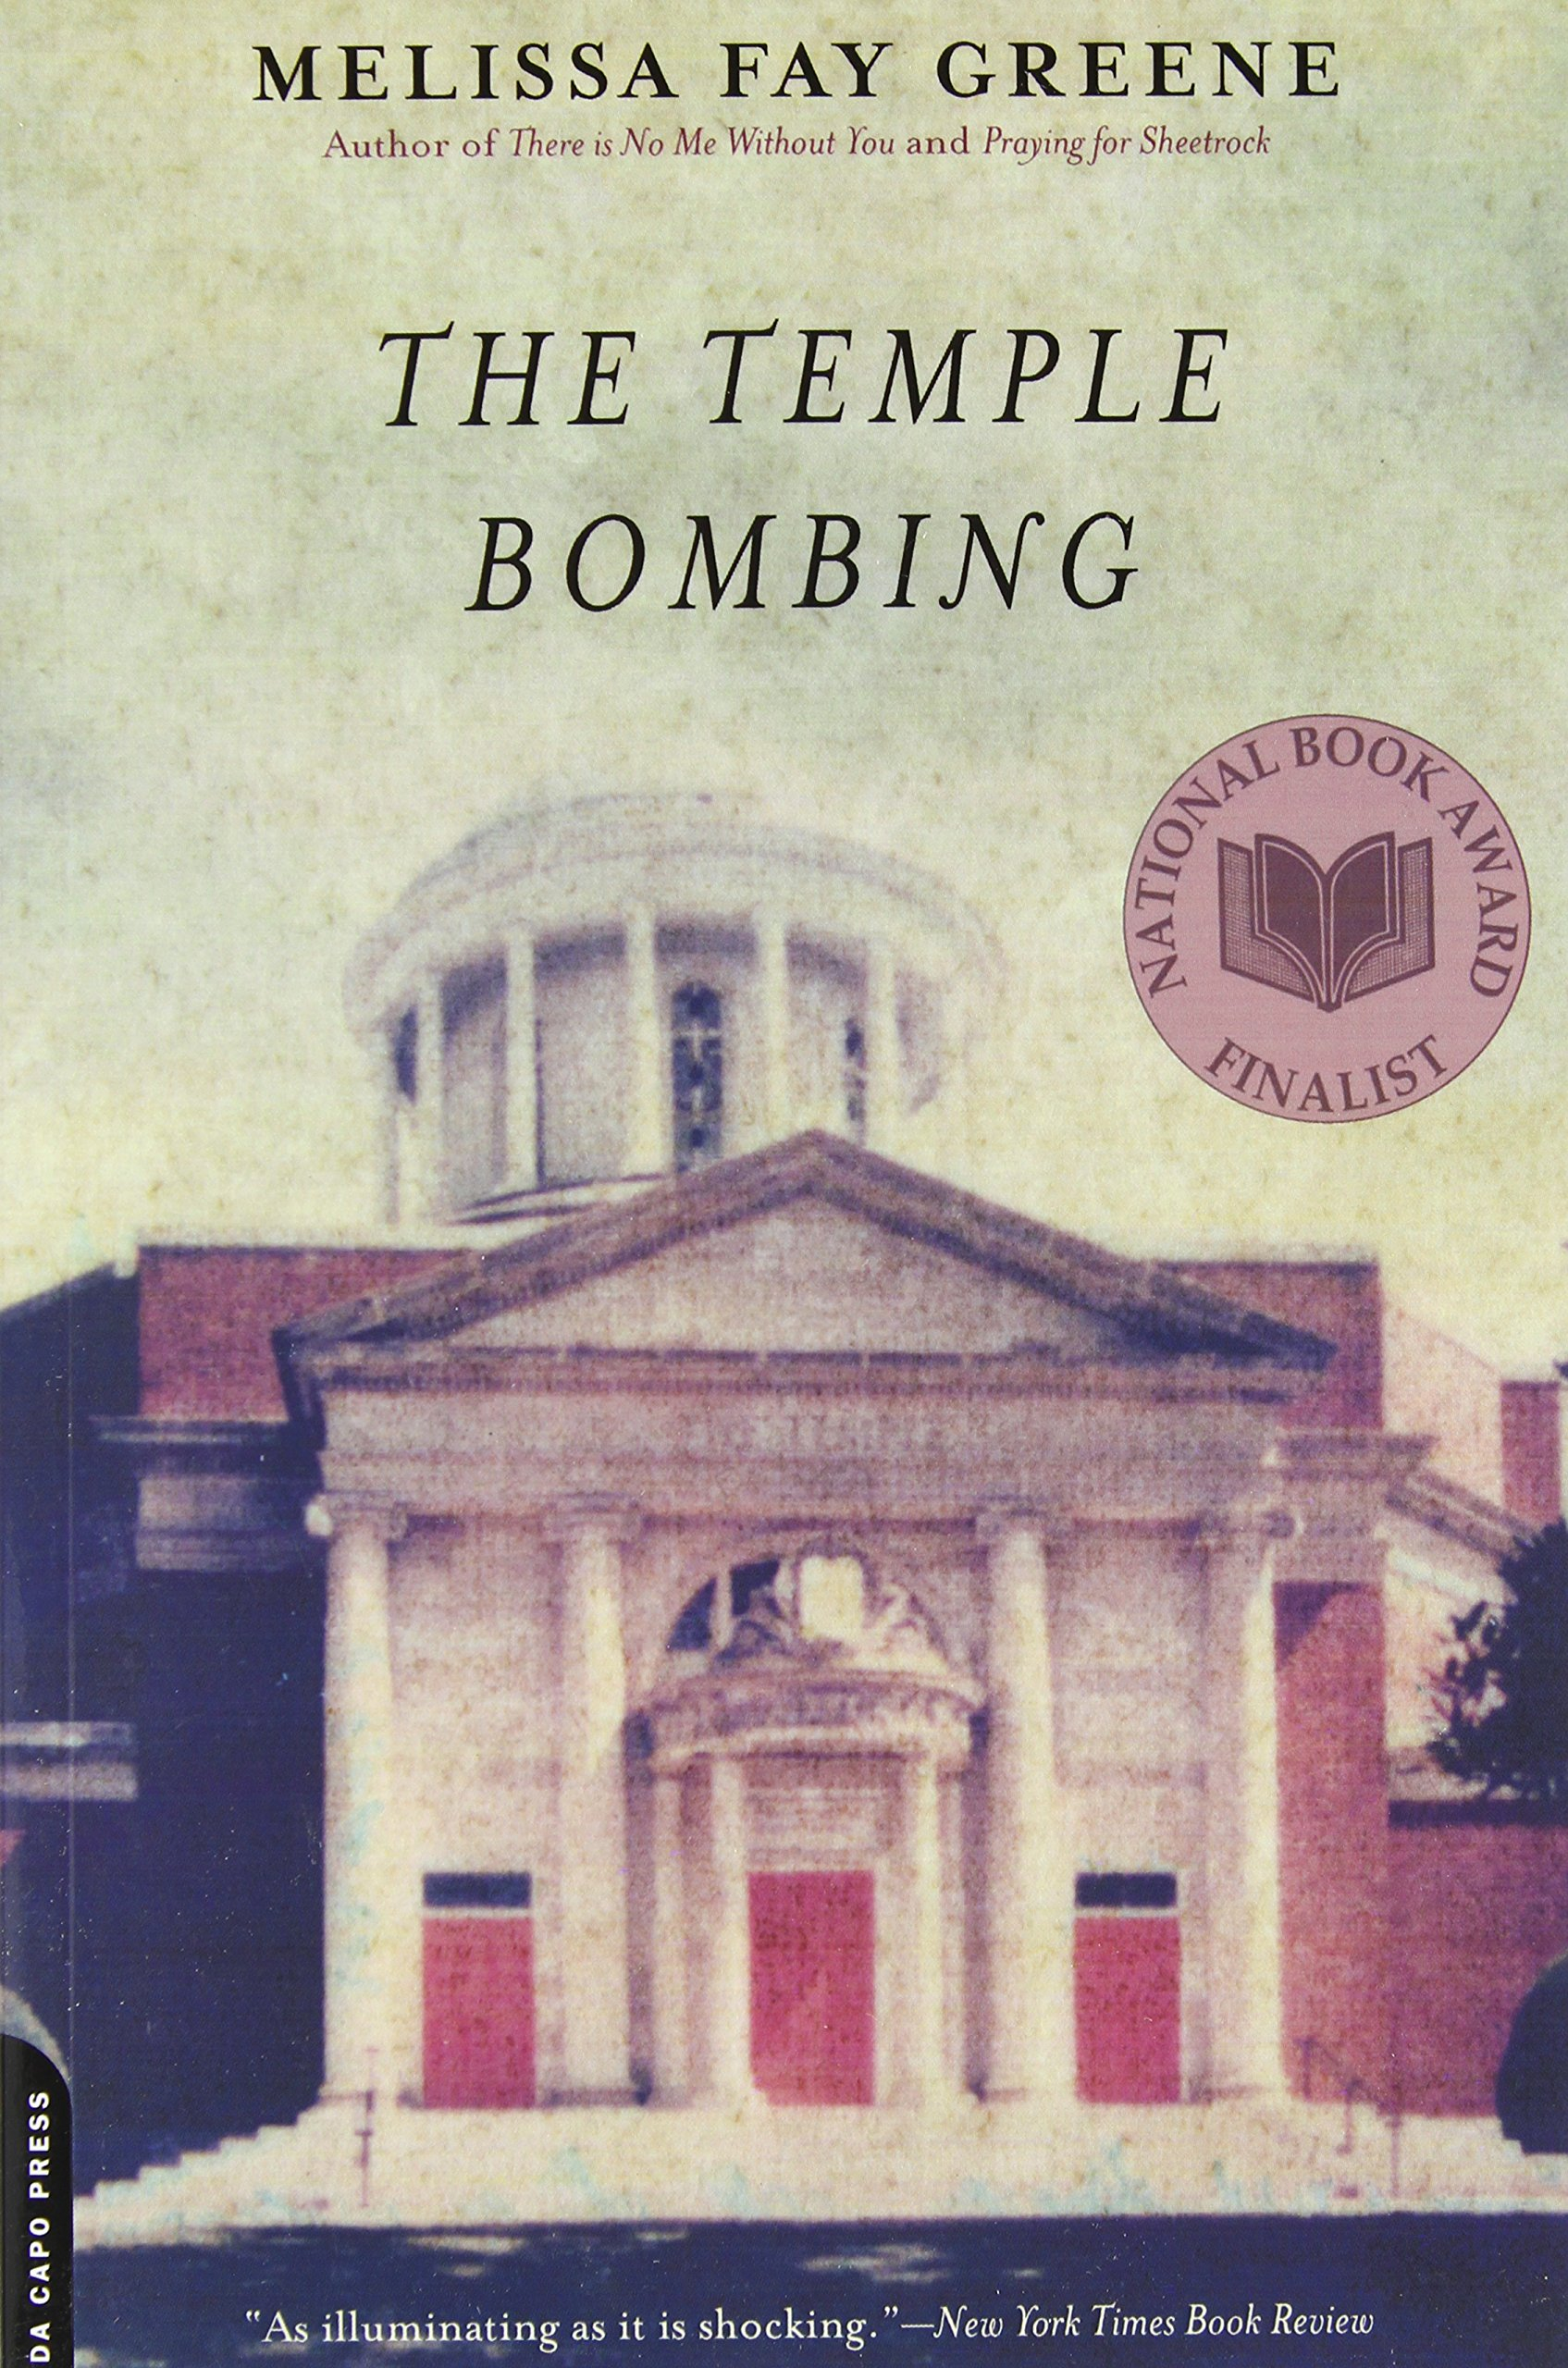 The Temple Bombing: Melissa Fay Greene: 9780306815188: Amazon: Books